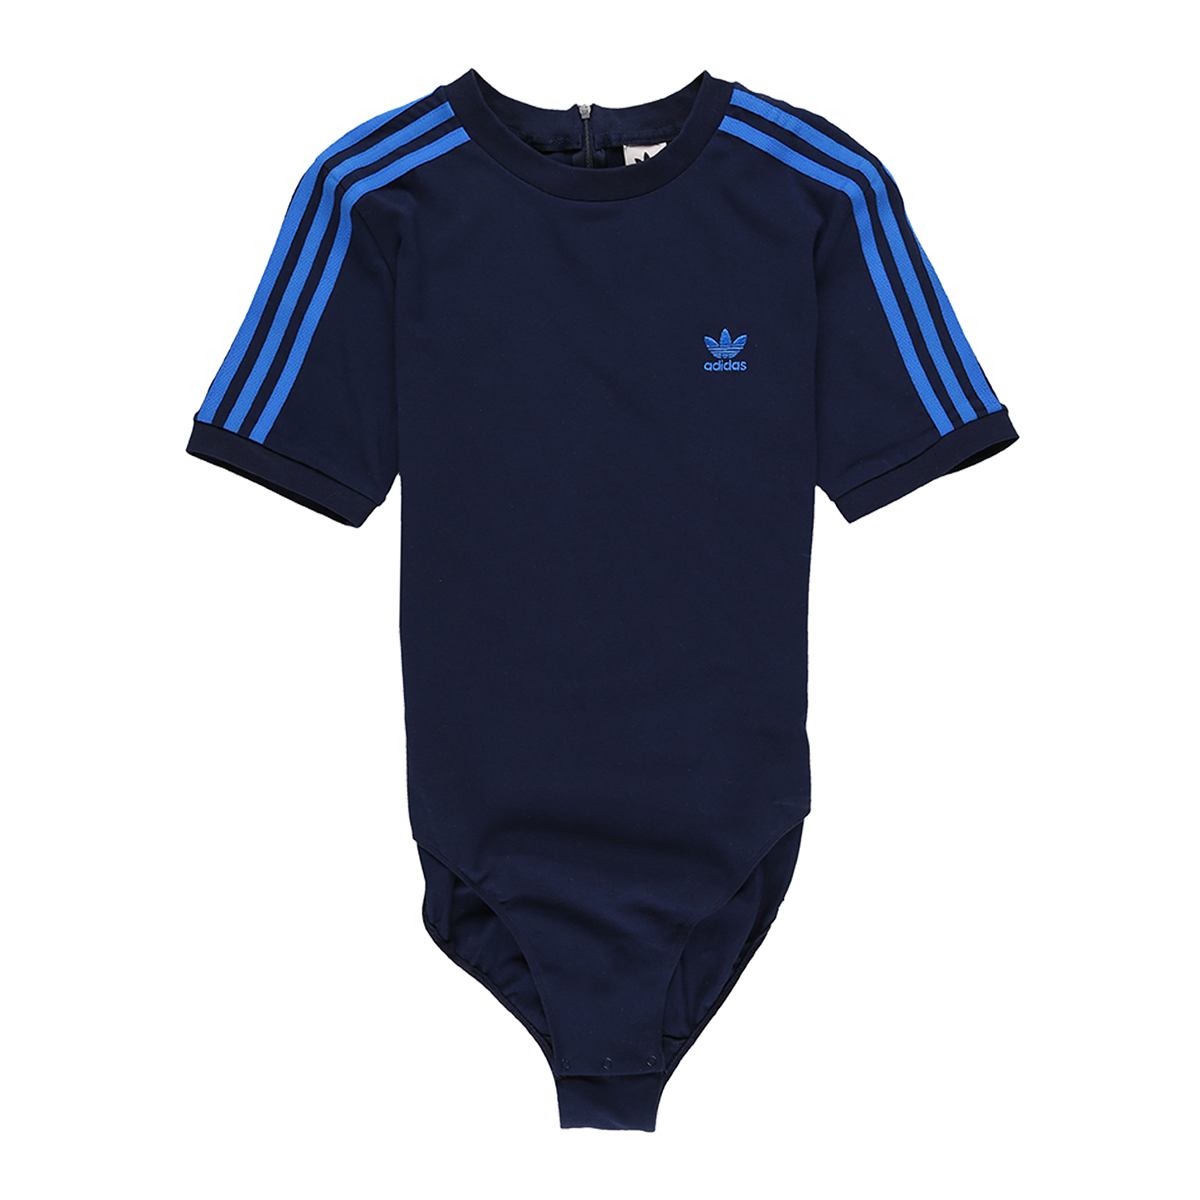 adidas Originals Women's Bodysuit  - XHIBITION